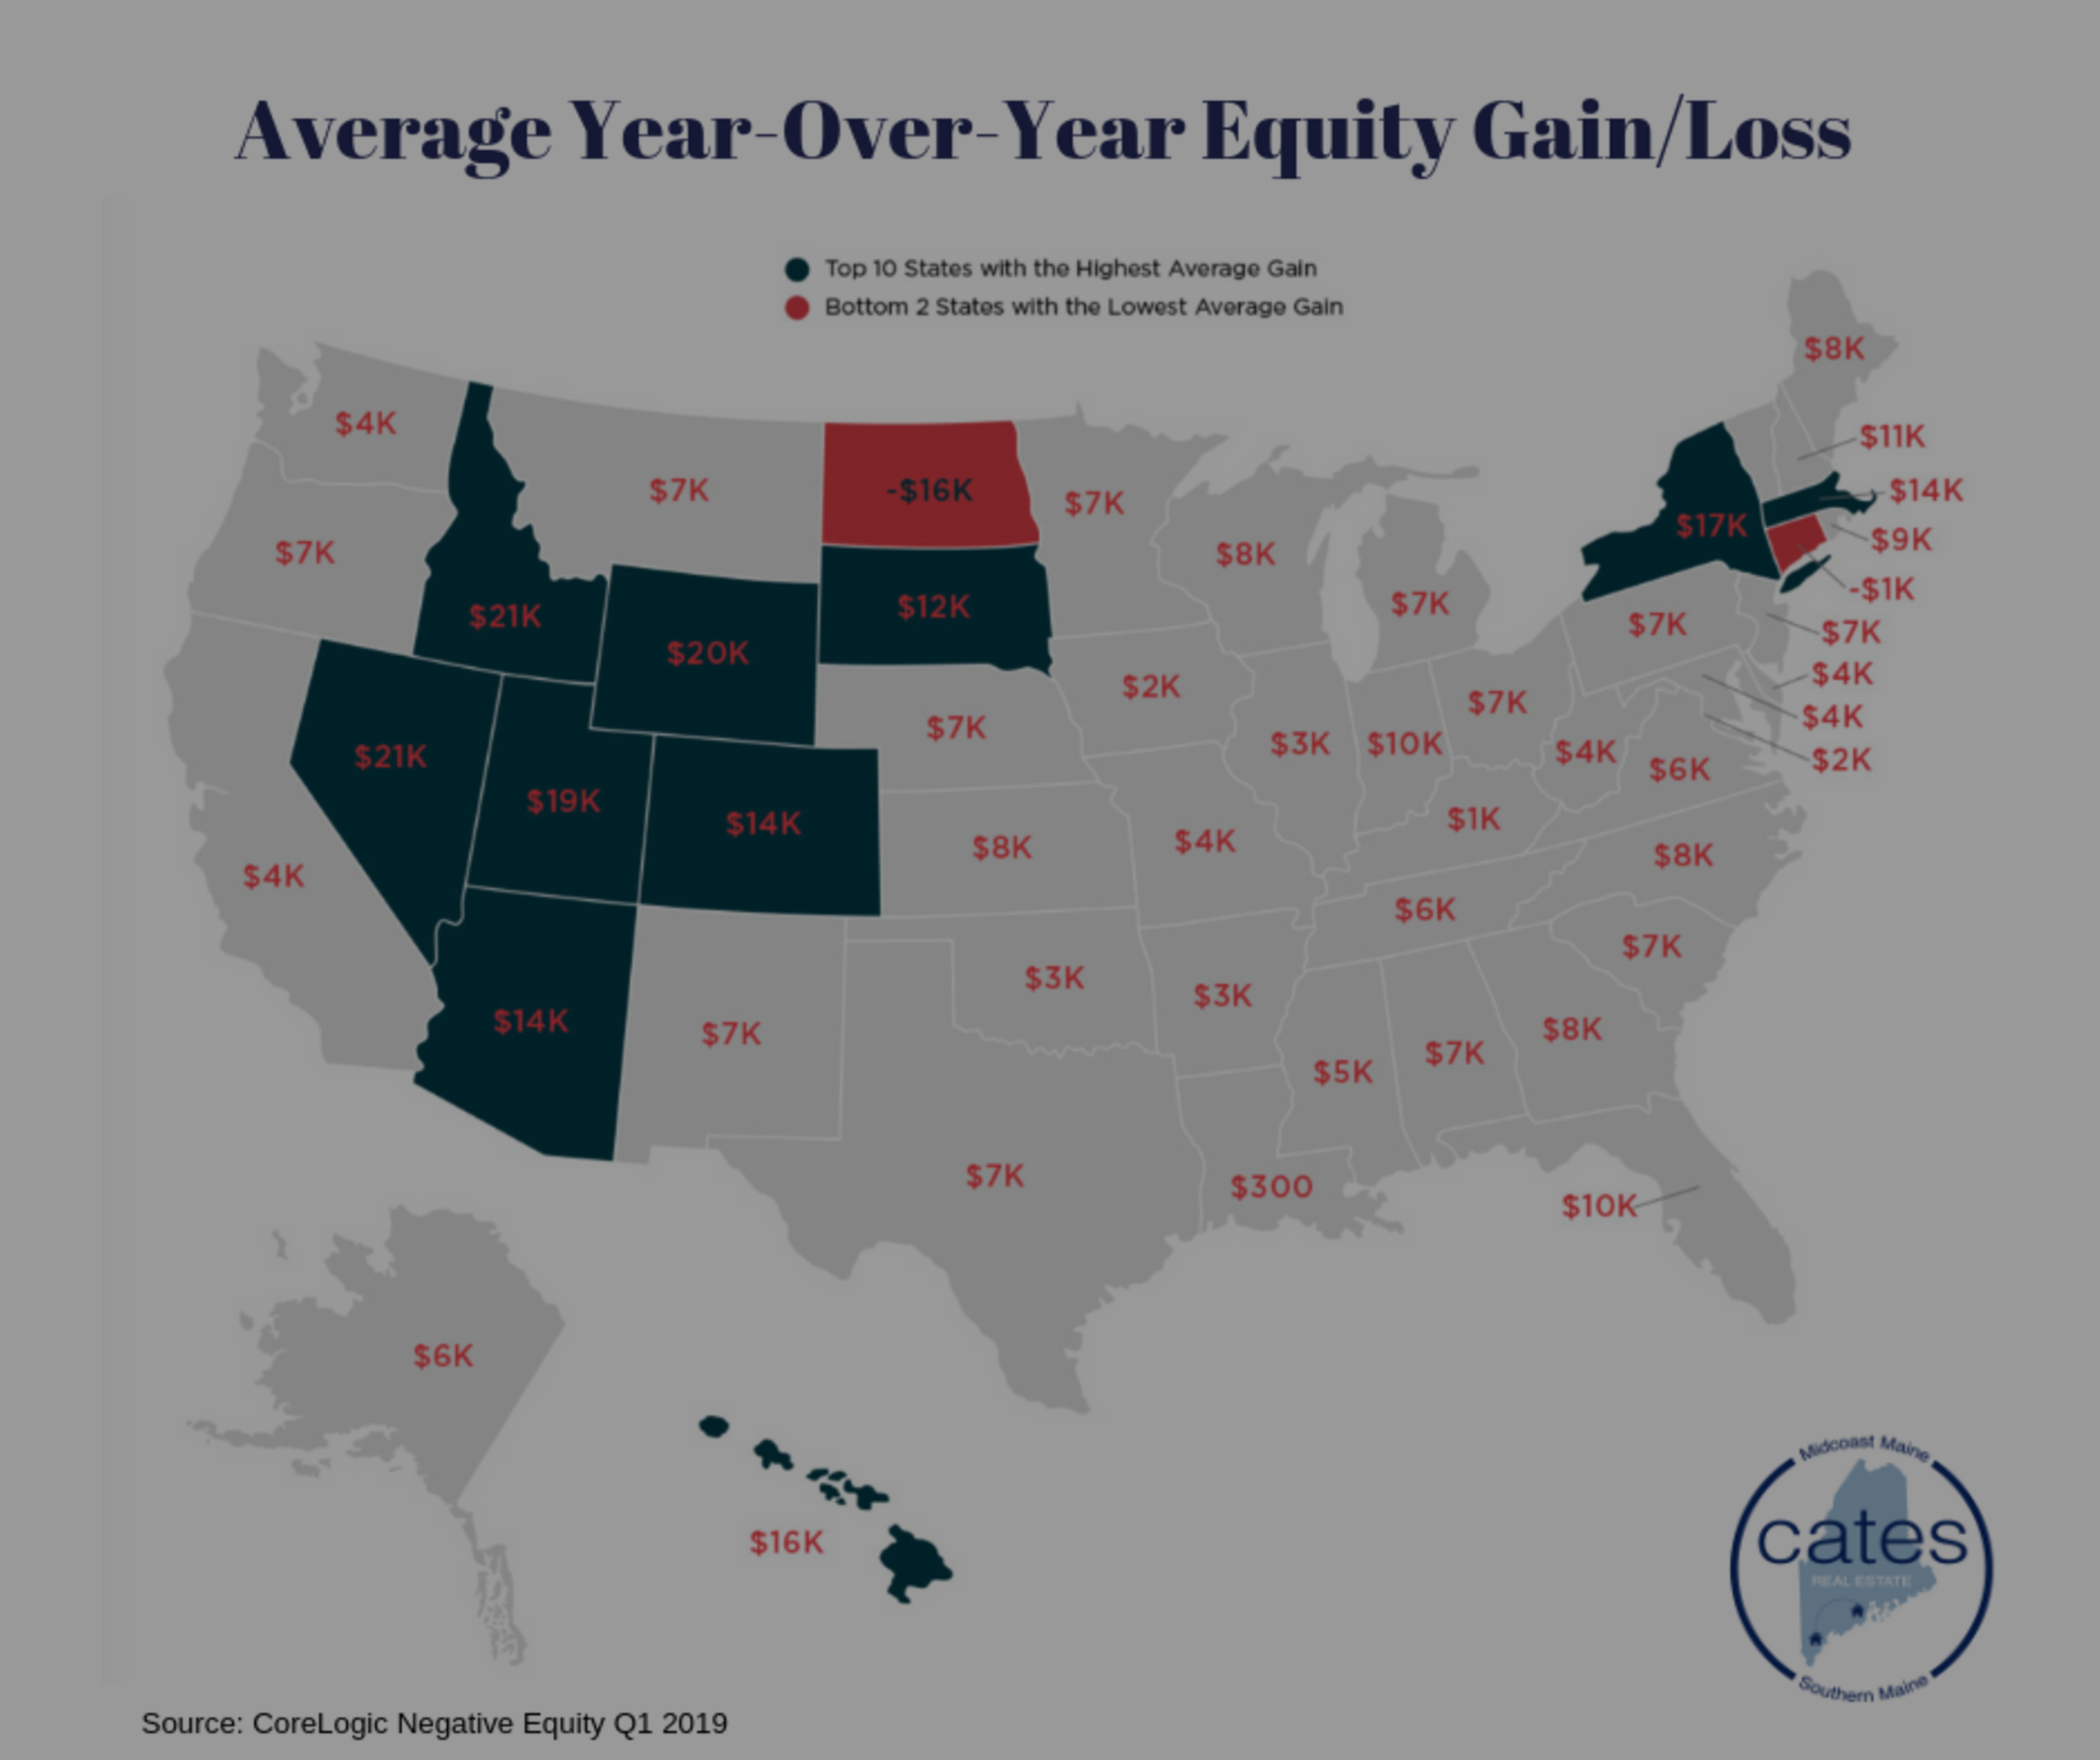 Average Year-Over-Year Equity